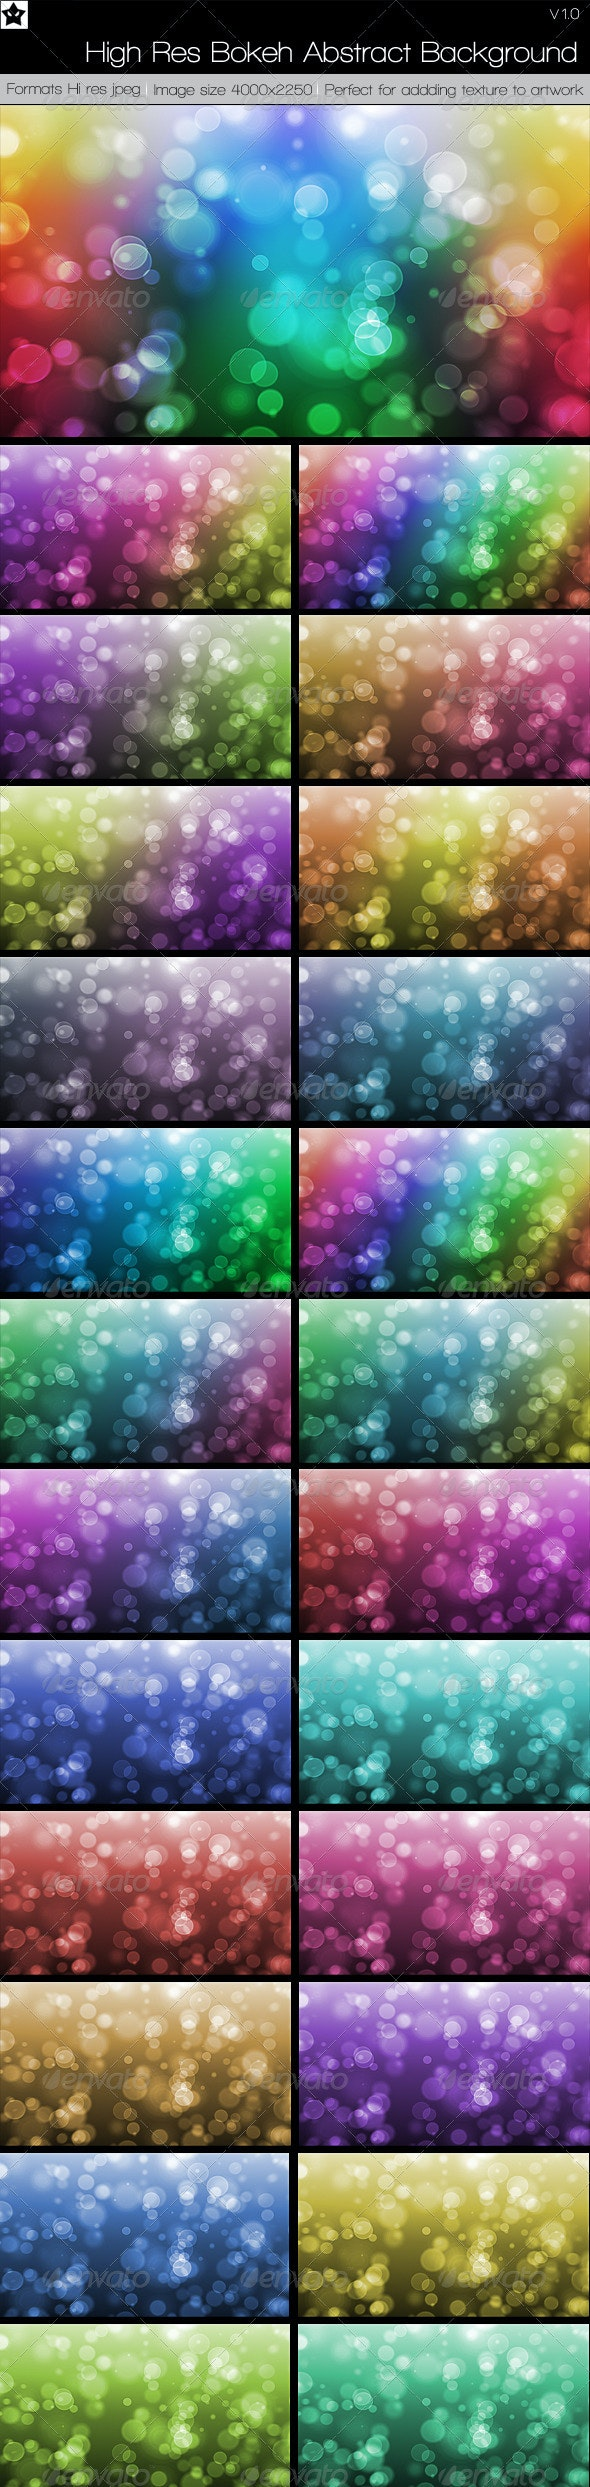 High Res Bokeh Abstract Backgrounds Web 2.0 - Backgrounds Graphics